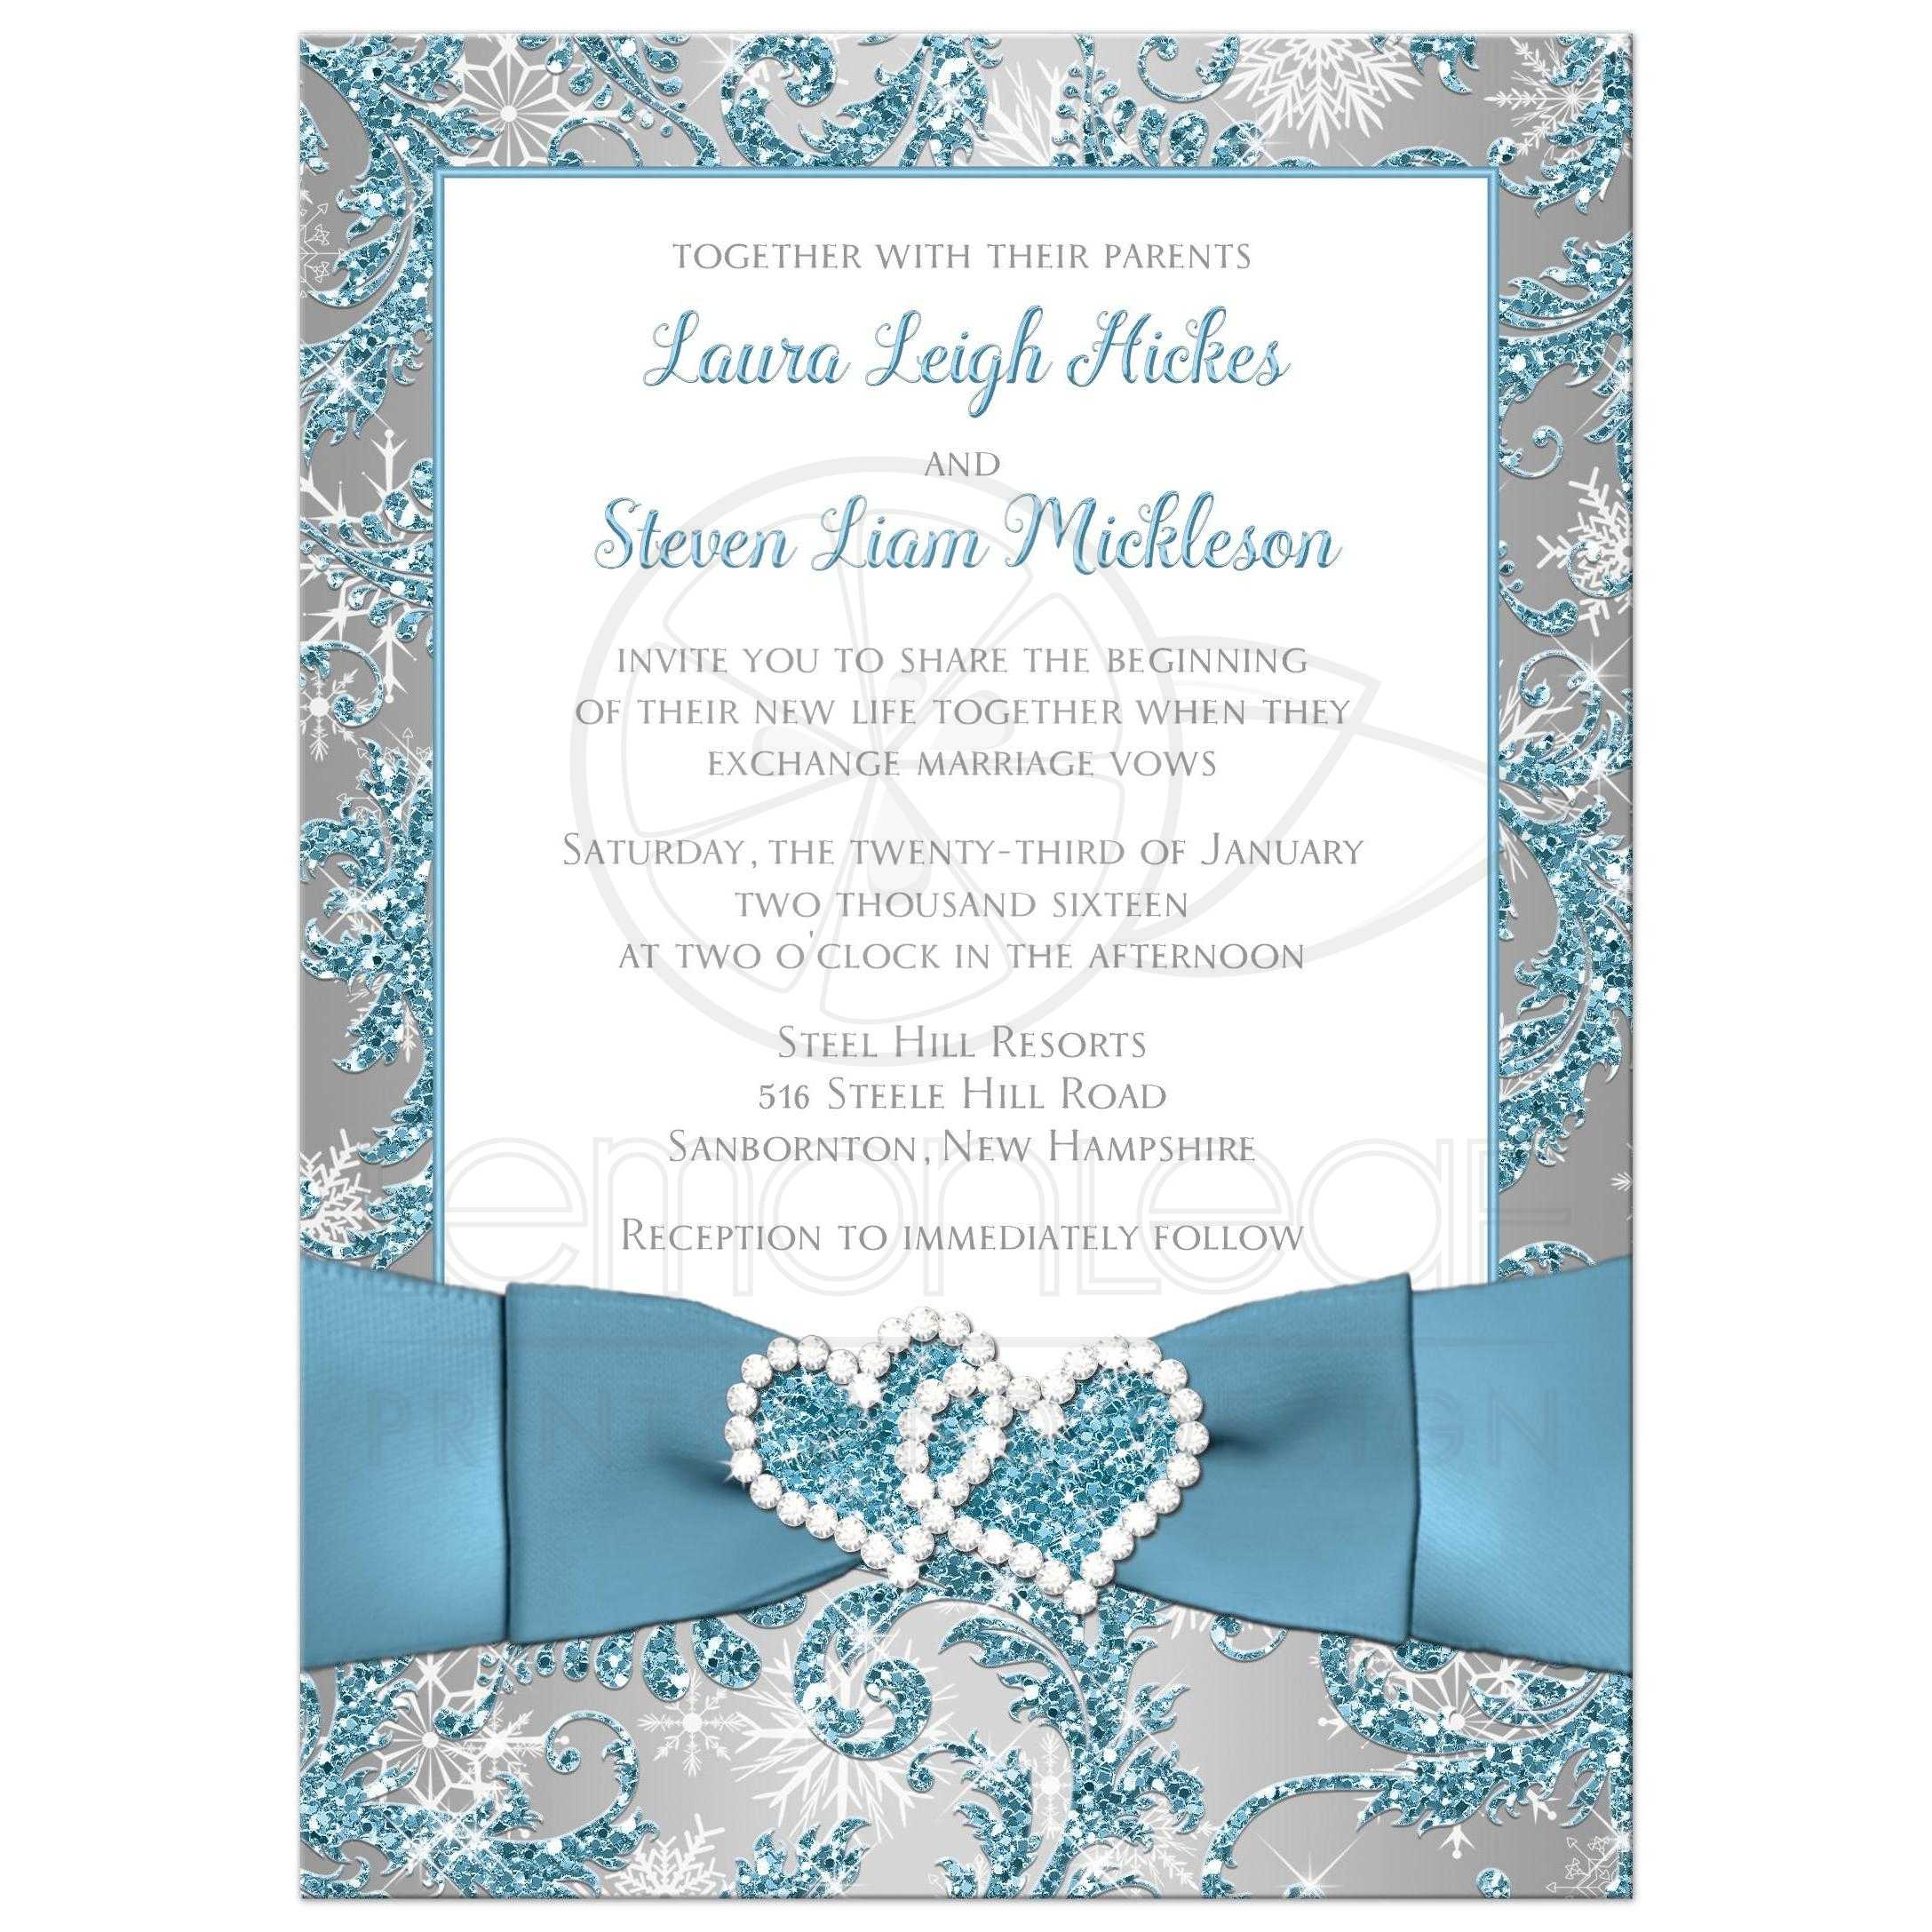 Wedding Invitation | Winter Wonderland 2 | Ice Blue, Silver, White ...